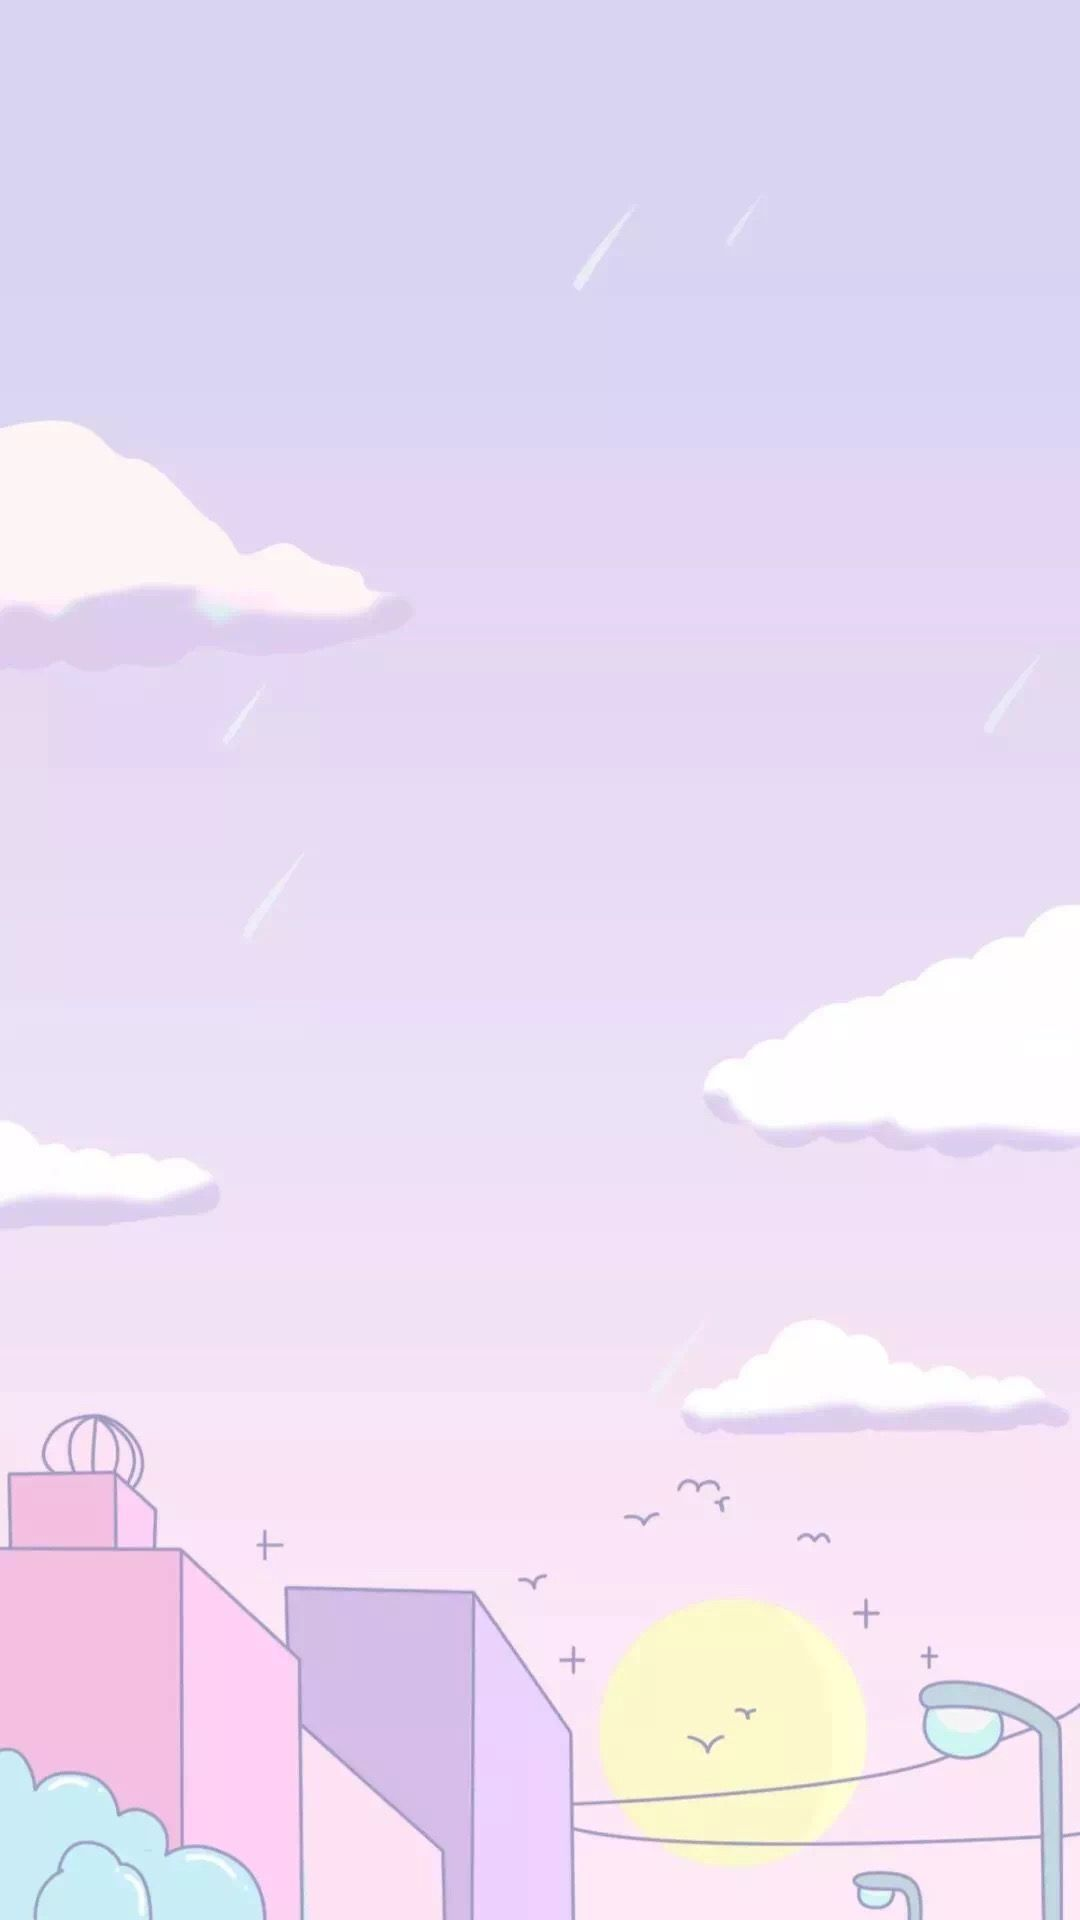 Pin By Veronica On Wallpaper Pink Scenery Wallpaper Anime Scenery Wallpaper Cute Pastel Wallpaper